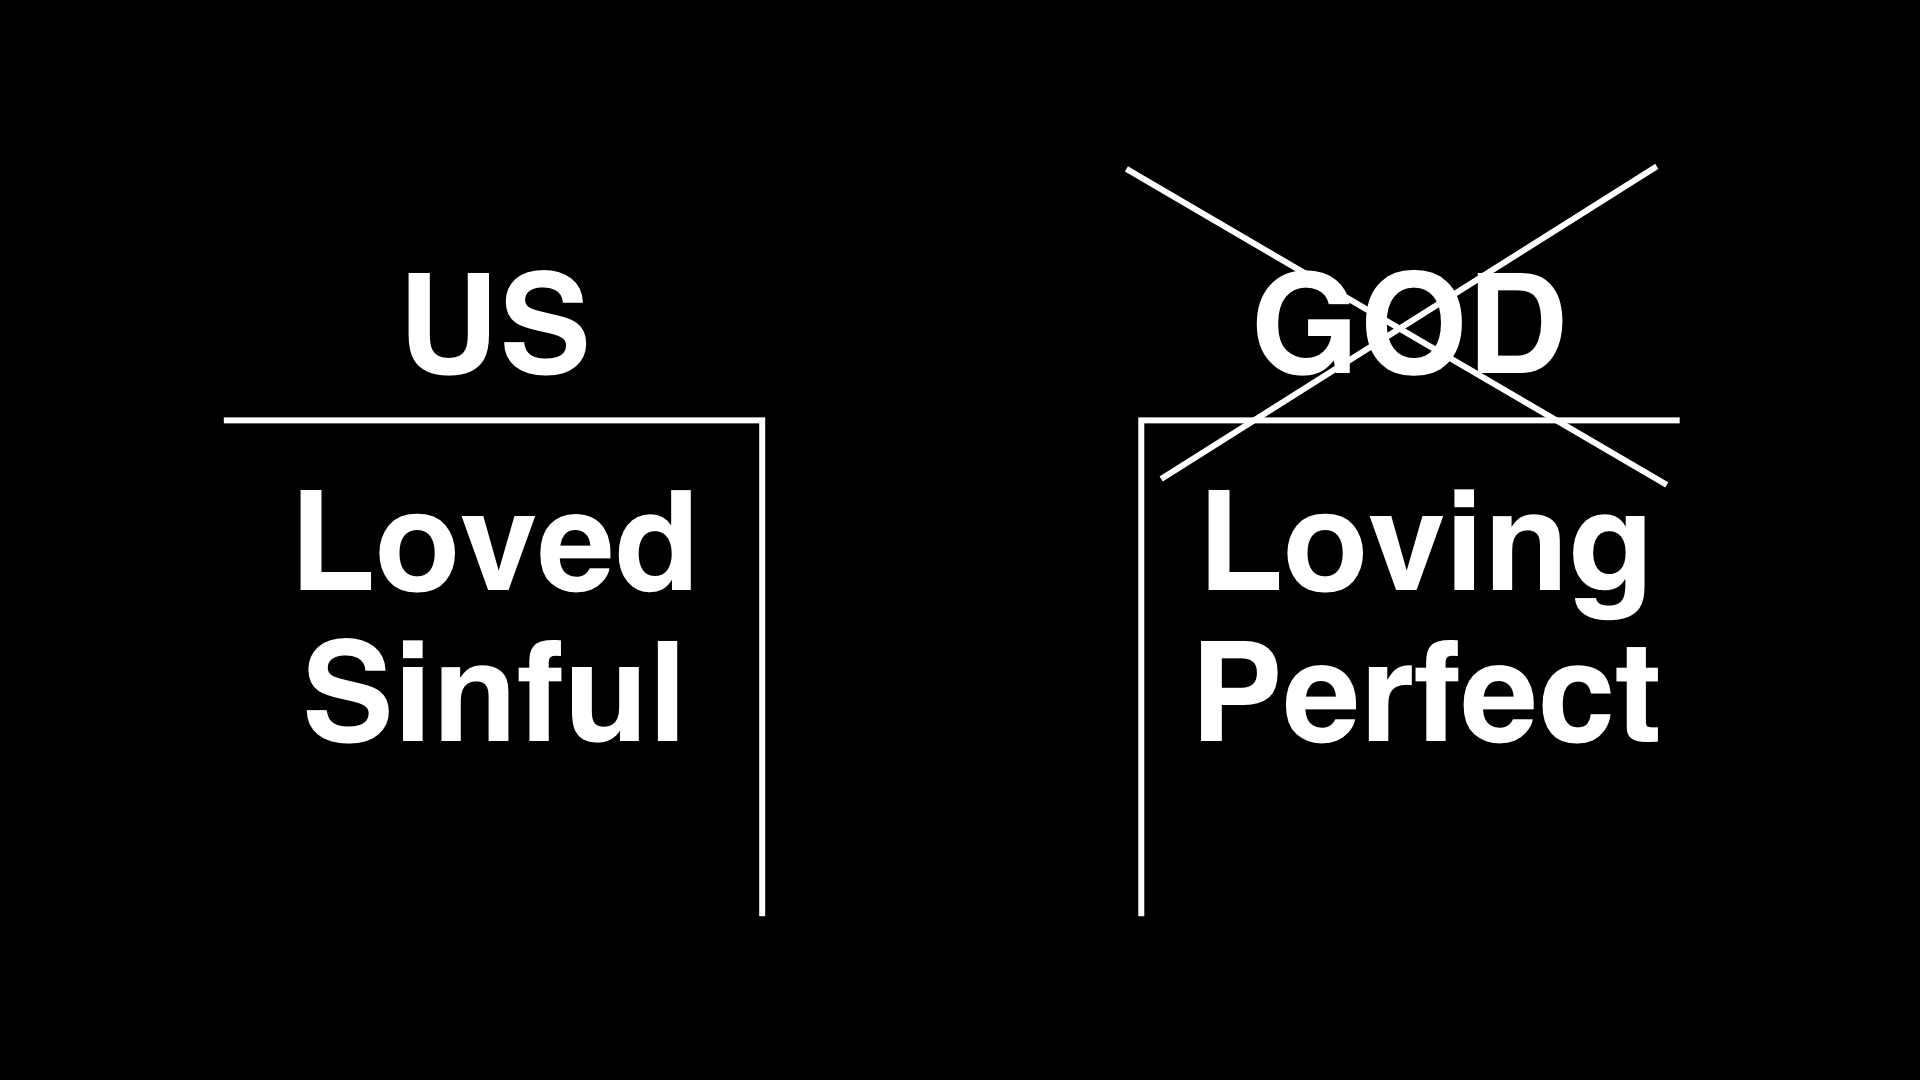 So what do we do?Some try to ignore God or explain him away. Who cares about a broken relationship with a perfect and holy God who doesn't exist. The problem is God exists whether we believe it or not. He simply is and denying him doesn't make him go away.